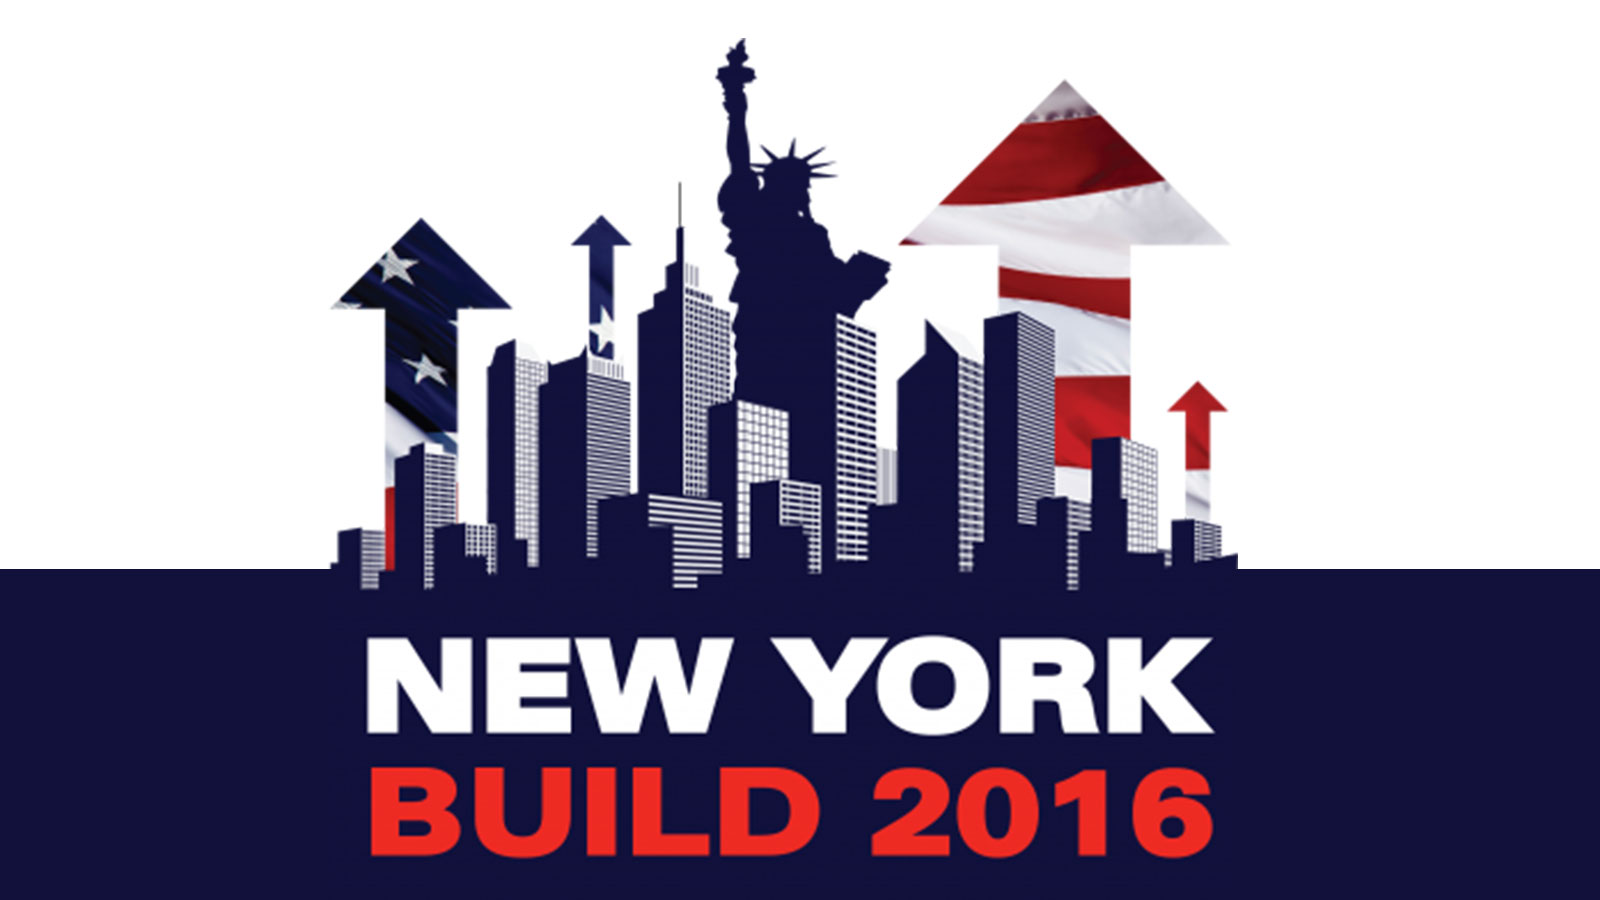 Asite to present & exhibit at New York Build